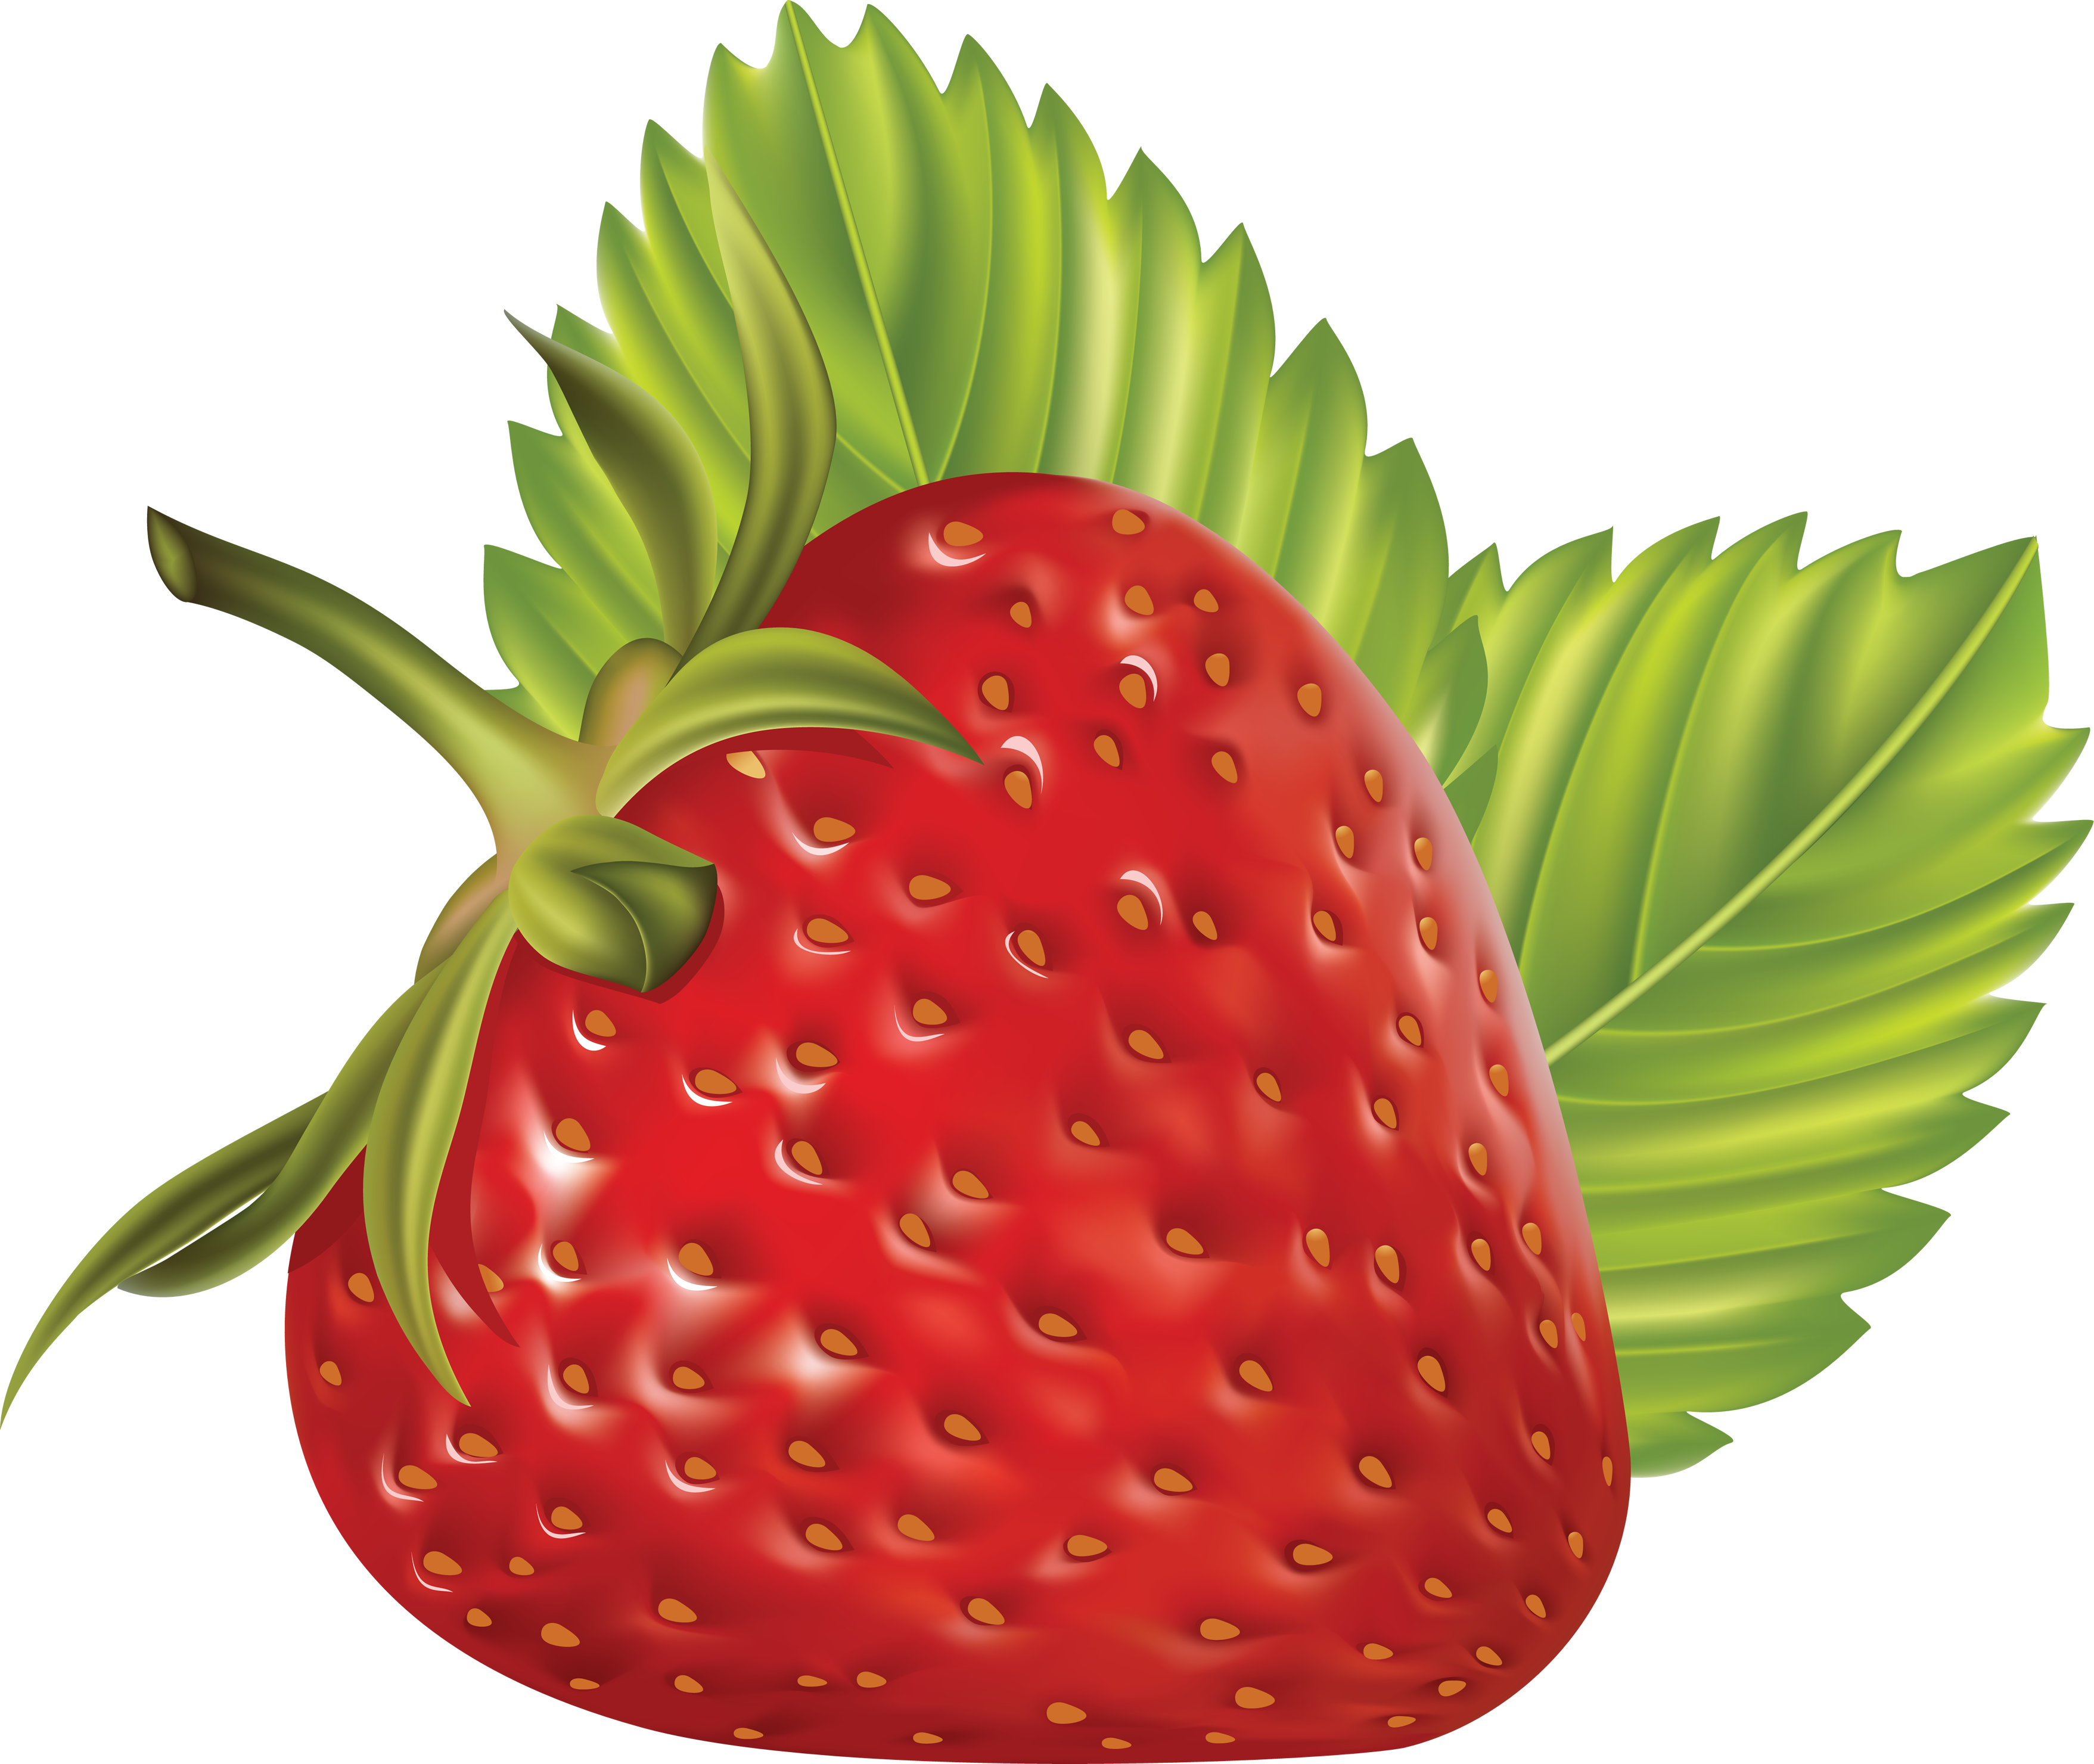 Strawberries clipart clear background. Strawberry png images